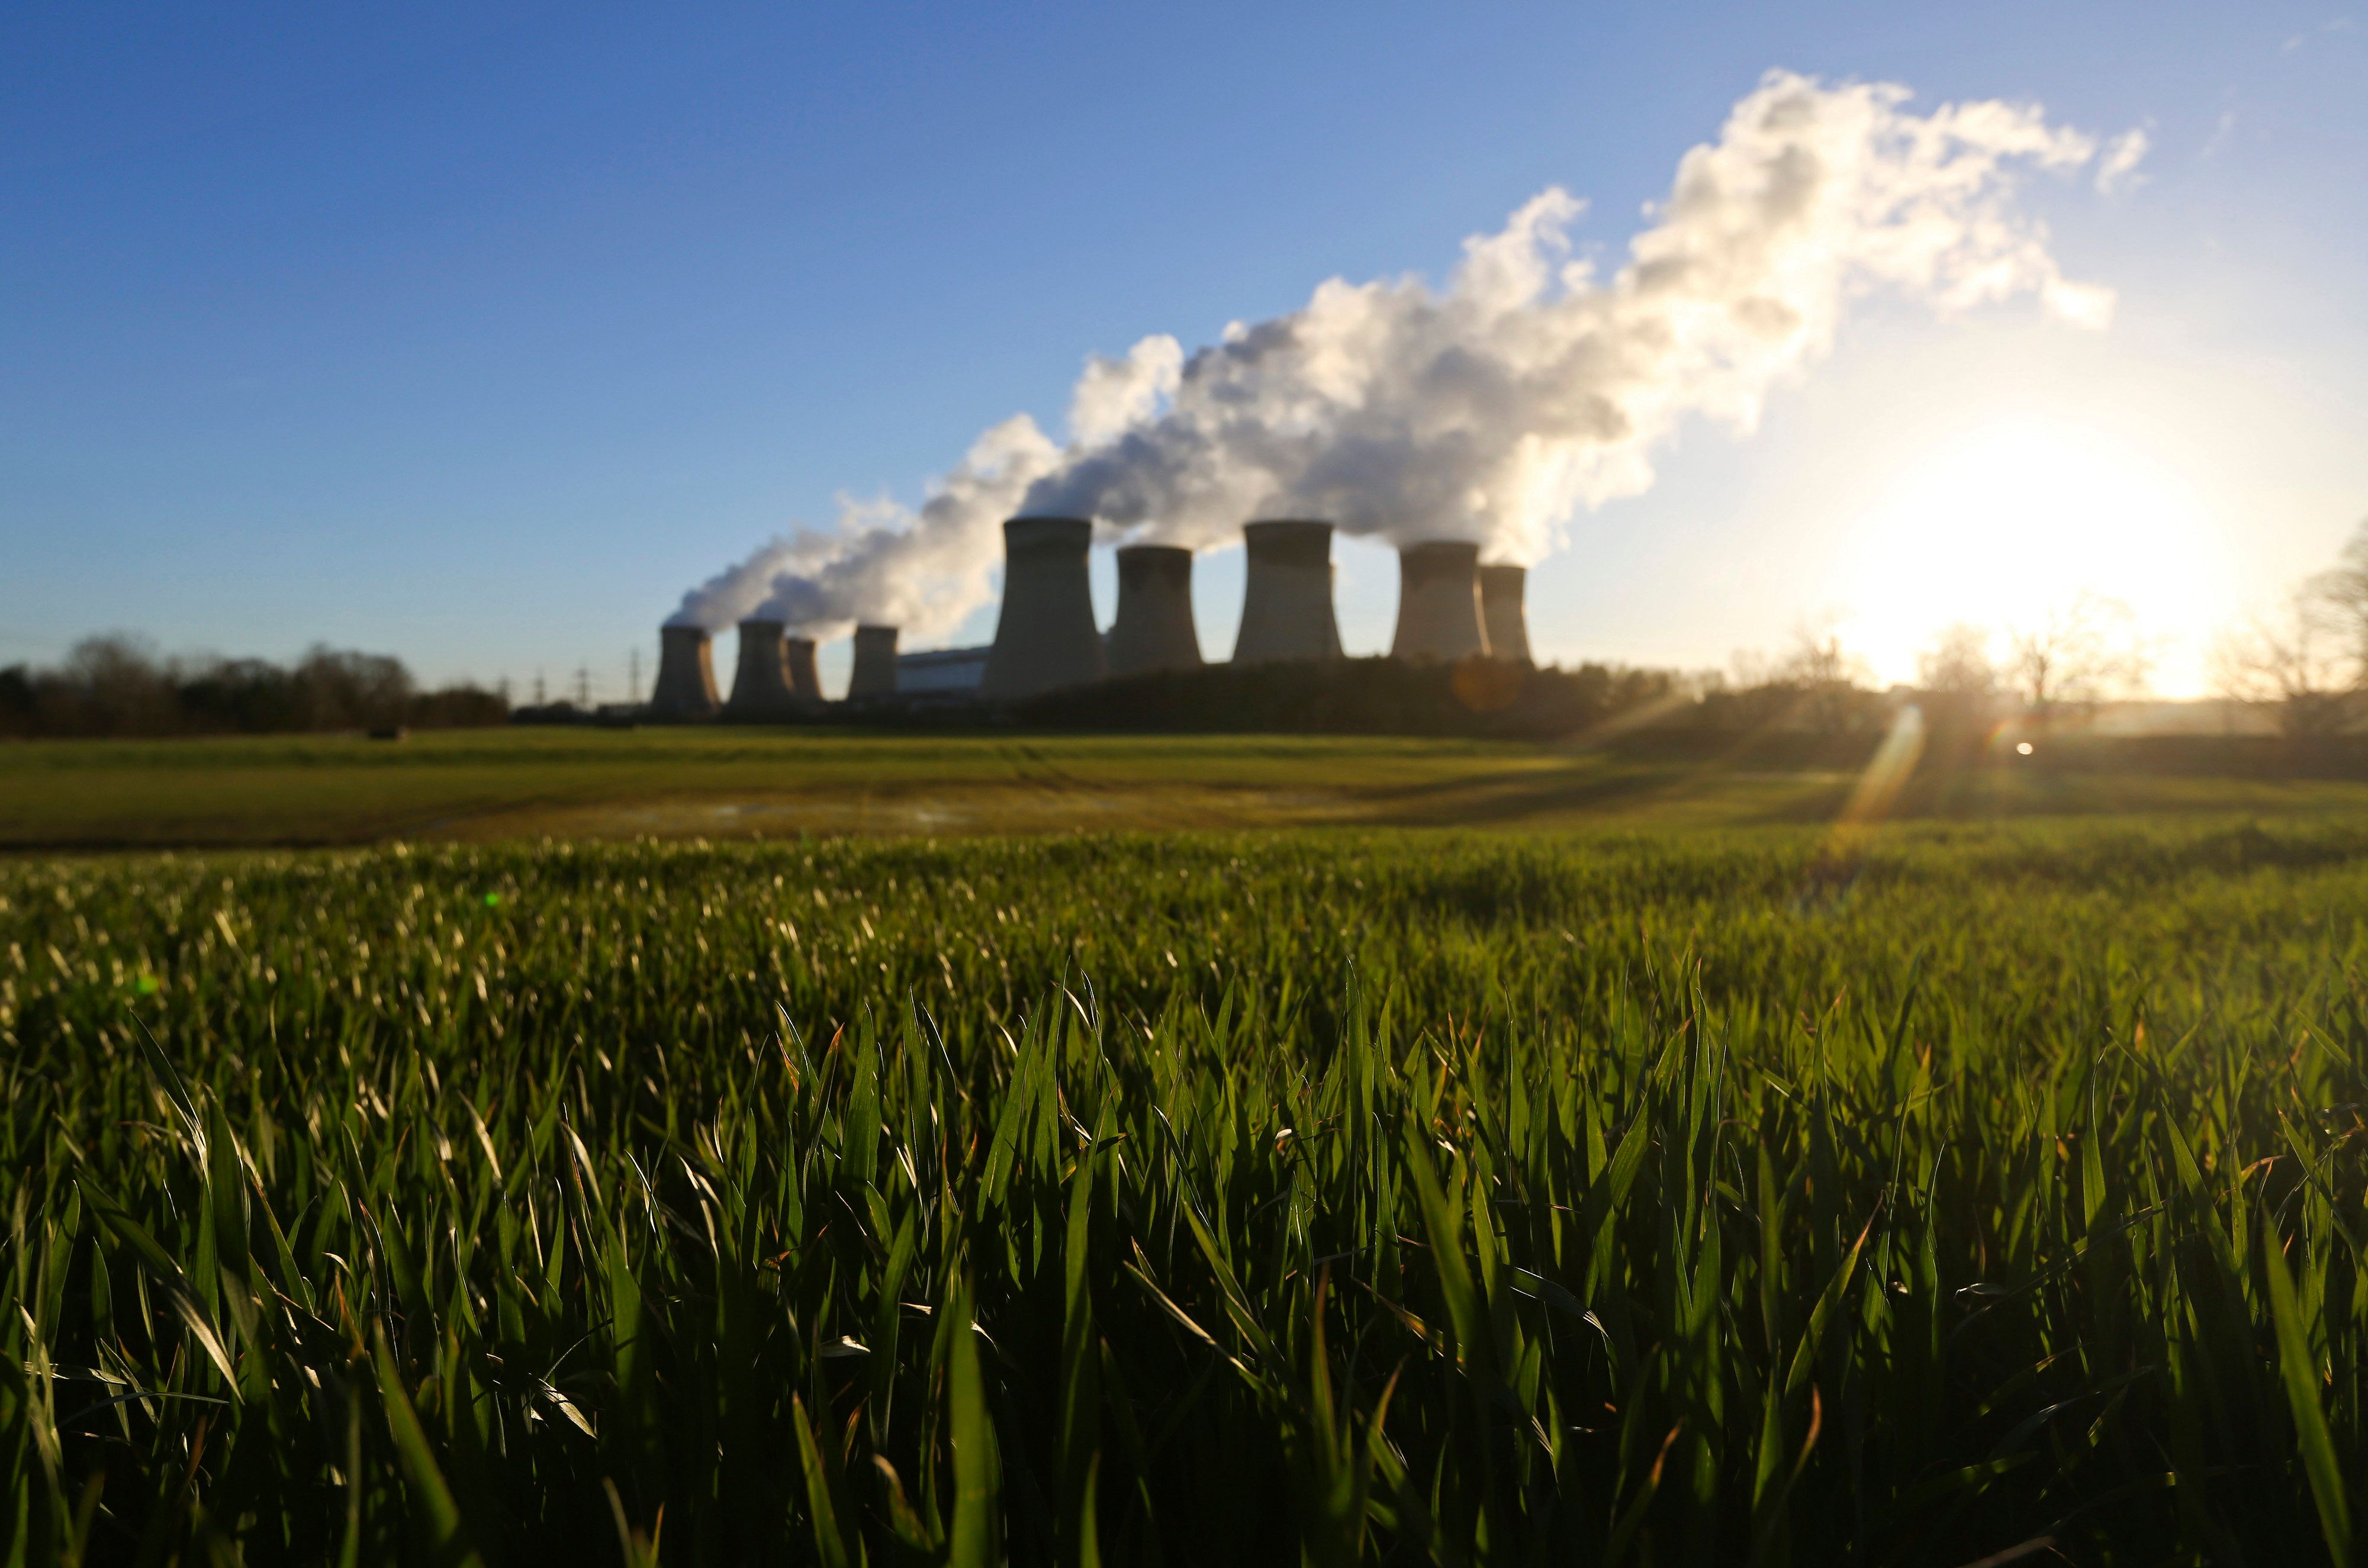 Agricultural crops grow in a farmer's field as vapour rises from cooling towers at Drax Power Station, operated by Drax Group Plc, in Selby, U.K., on Tuesday, March 11, 2014. Drax Group Plc, the operator of the U.K.'s biggest coal-fired power station, reported a 23 percent slump in full-year profit as carbon prices rose and it prepared to convert two more units to burn cleaner fuel. Photographer: Chris Ratcliffe/Bloomberg via Getty Images